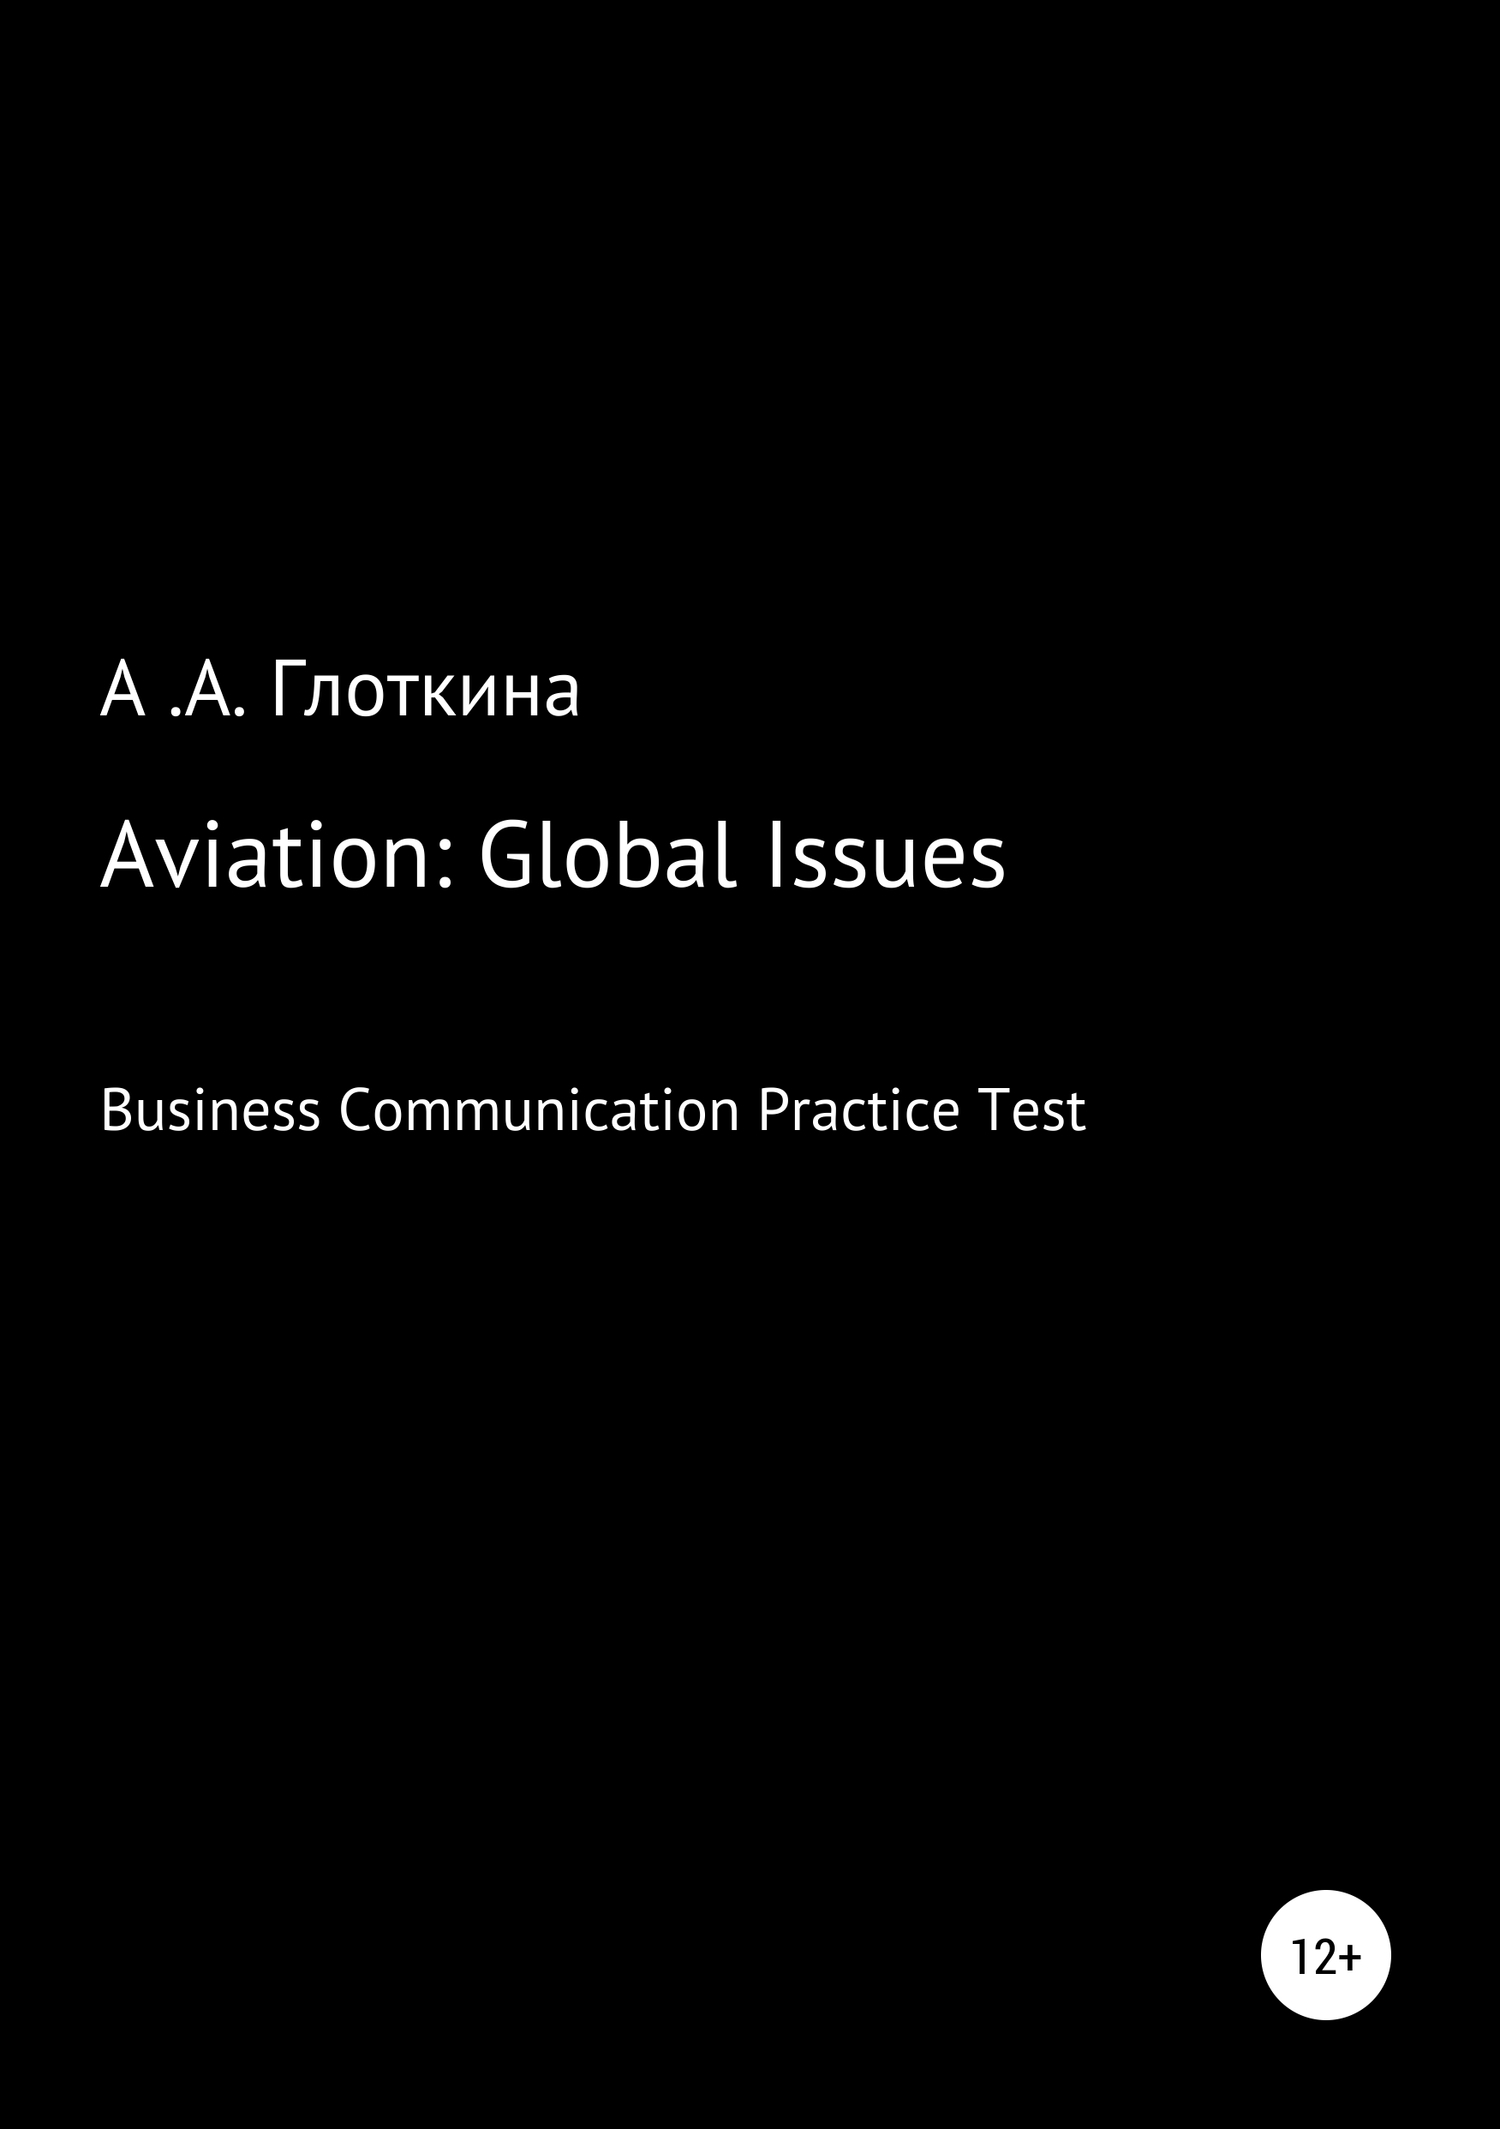 Aviation: Global Issues. Business Communication Practice Test